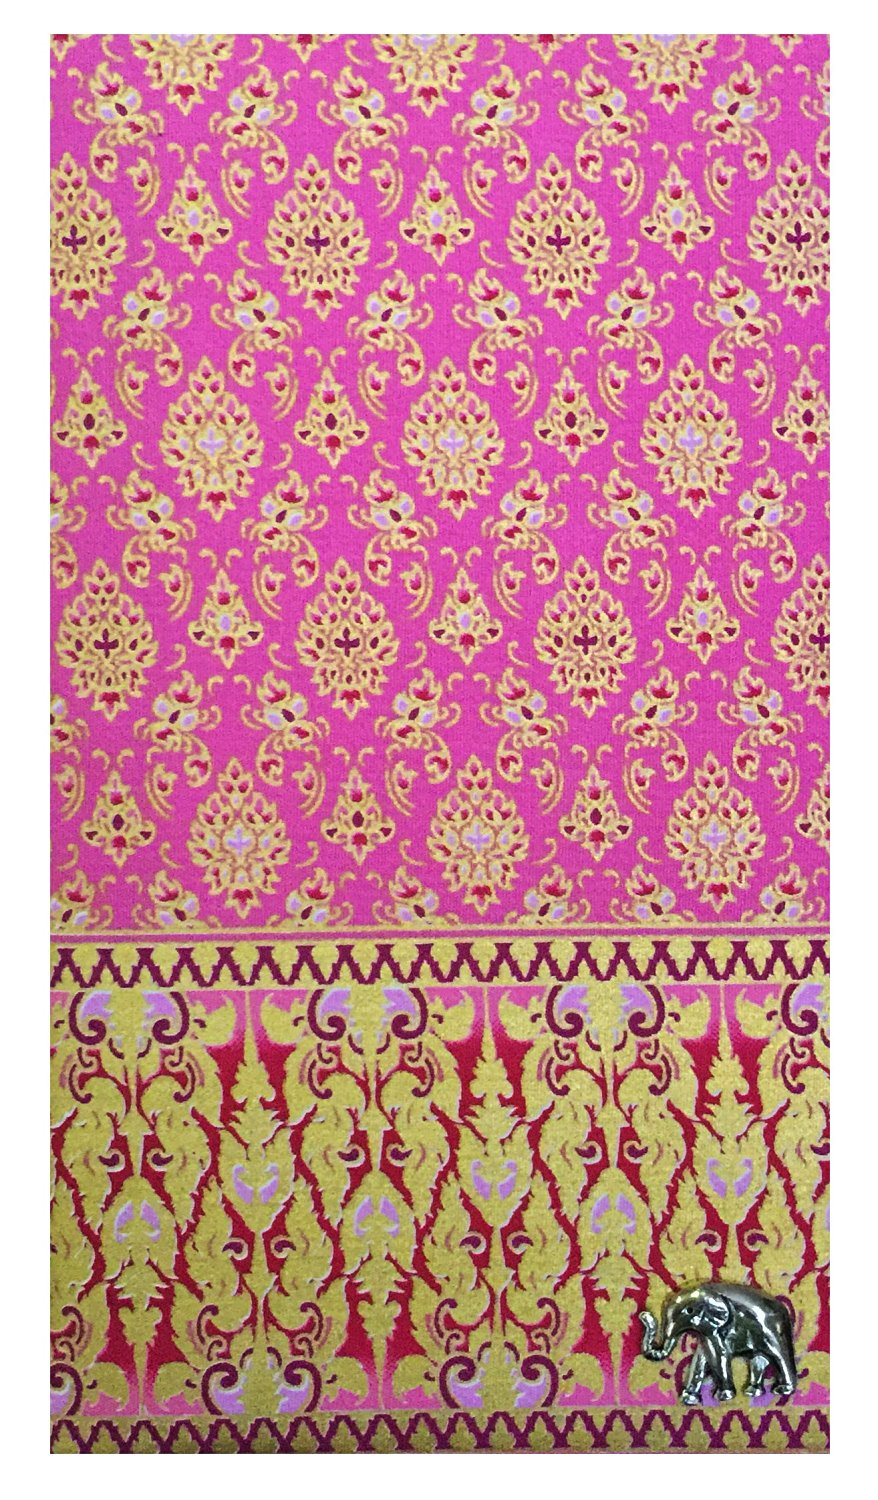 Pink Thai Fabric Waitstaff Organizer Guest Check Presenter, Check Holder for Restaurant, Guest Check Book Holder, Restaurant Server Book, Waitstaff Organizer Book (With Plastic Covers)